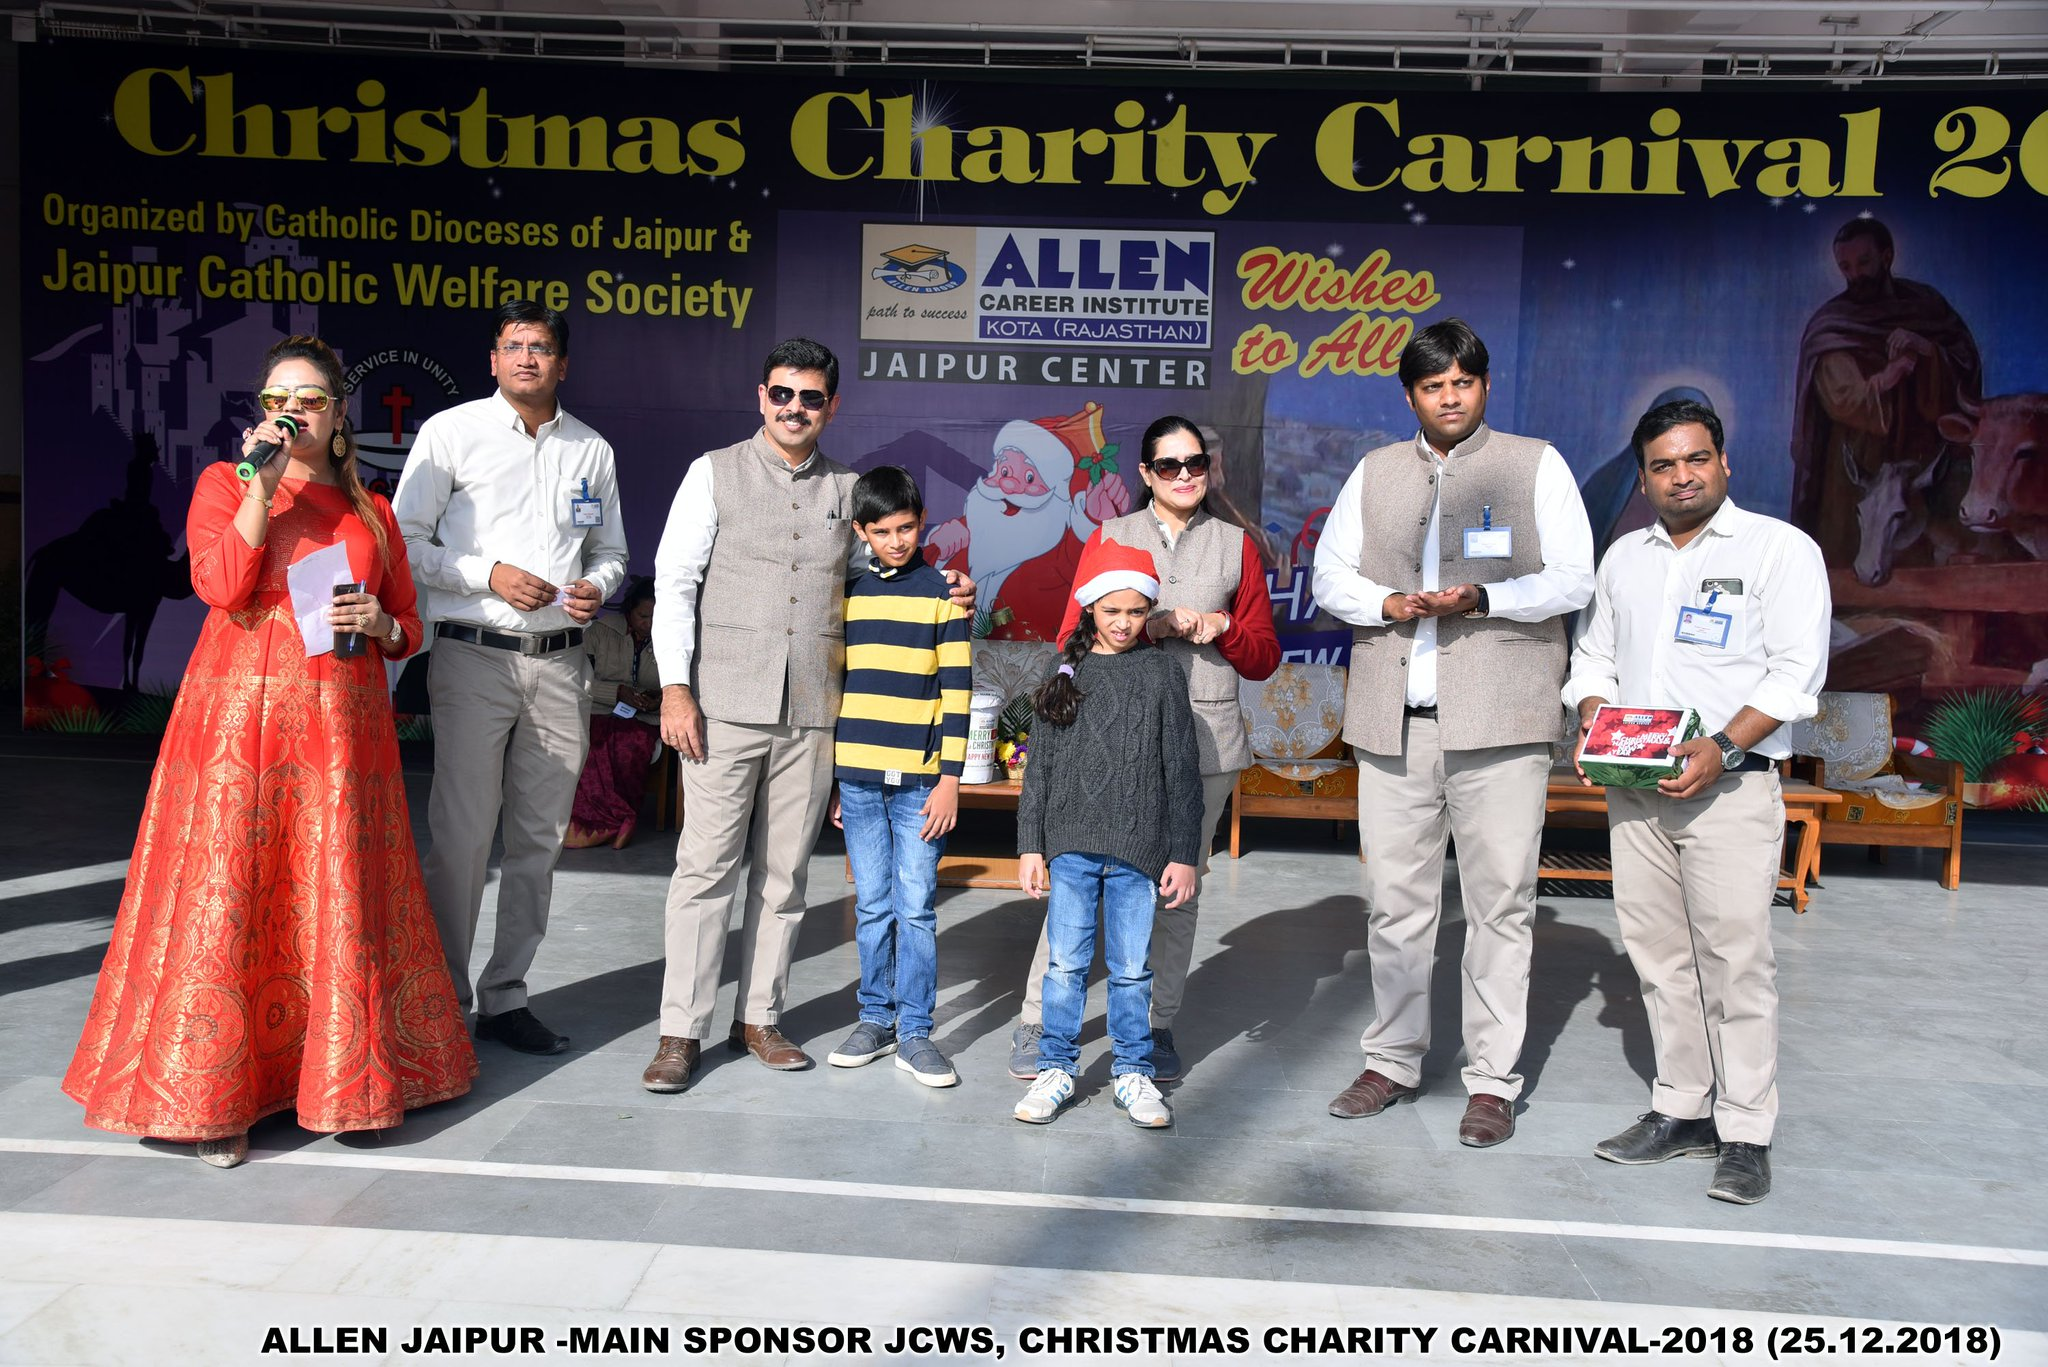 Allen Jaipur On Twitter Allen Career Institute Sponsored The Christmas Carnival Organized By Jaipur Catholic Welfare Society Jcws On 25 Dec In Which 10 000 Students With Families Of 7 Schools Had Fun In